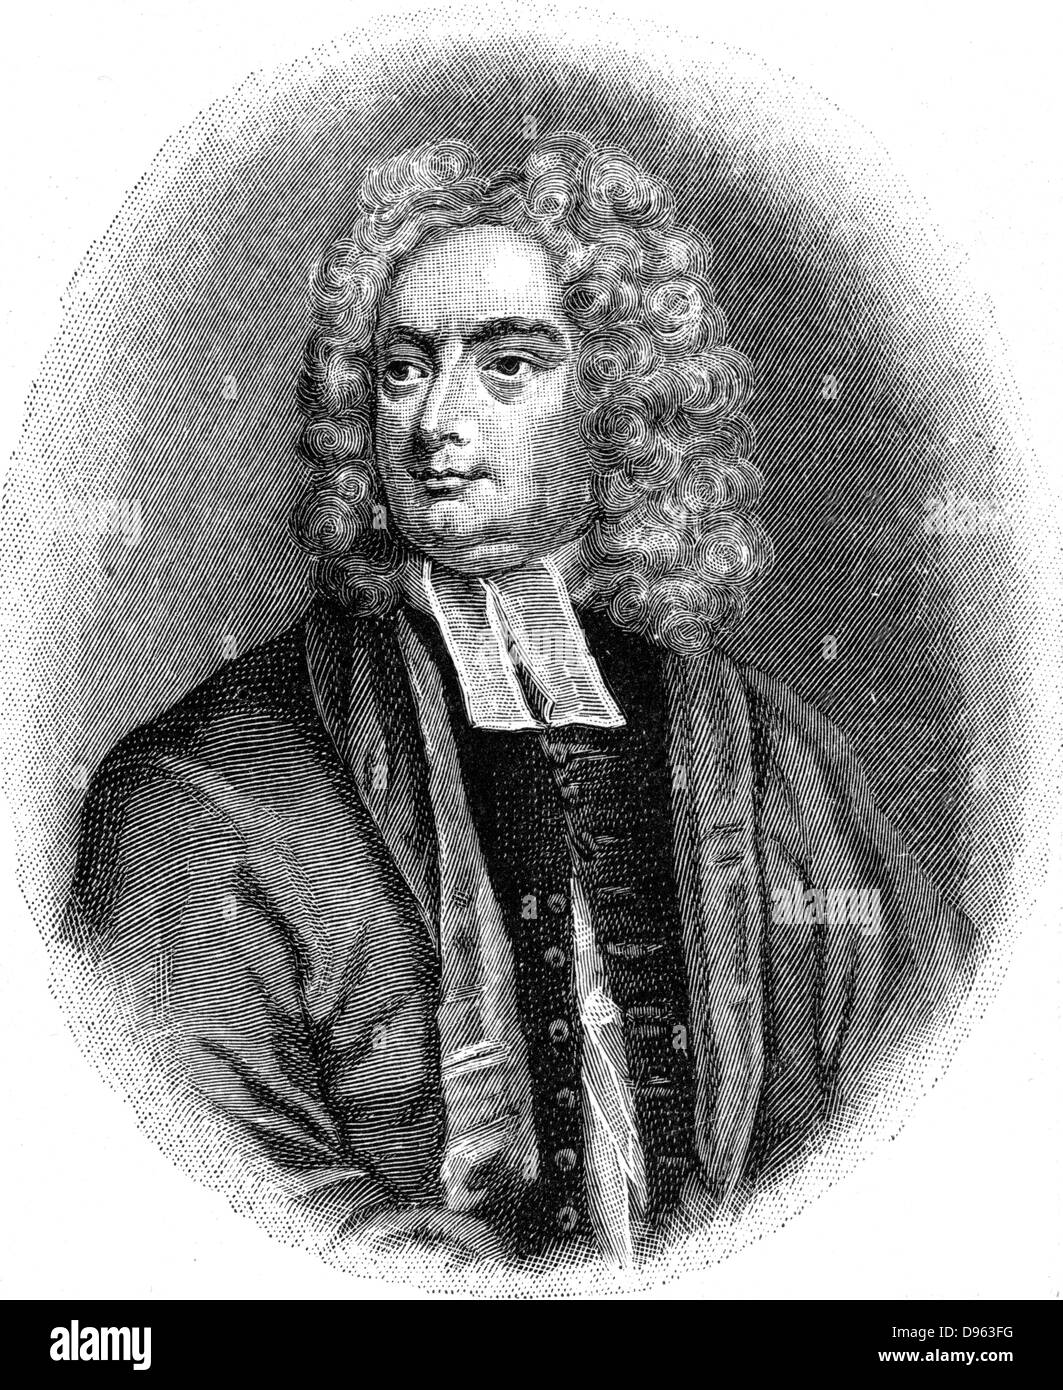 Jonathan Swift (1667-1745) Anglo-Irish satirist, poet and cleric. Engraving. - Stock Image